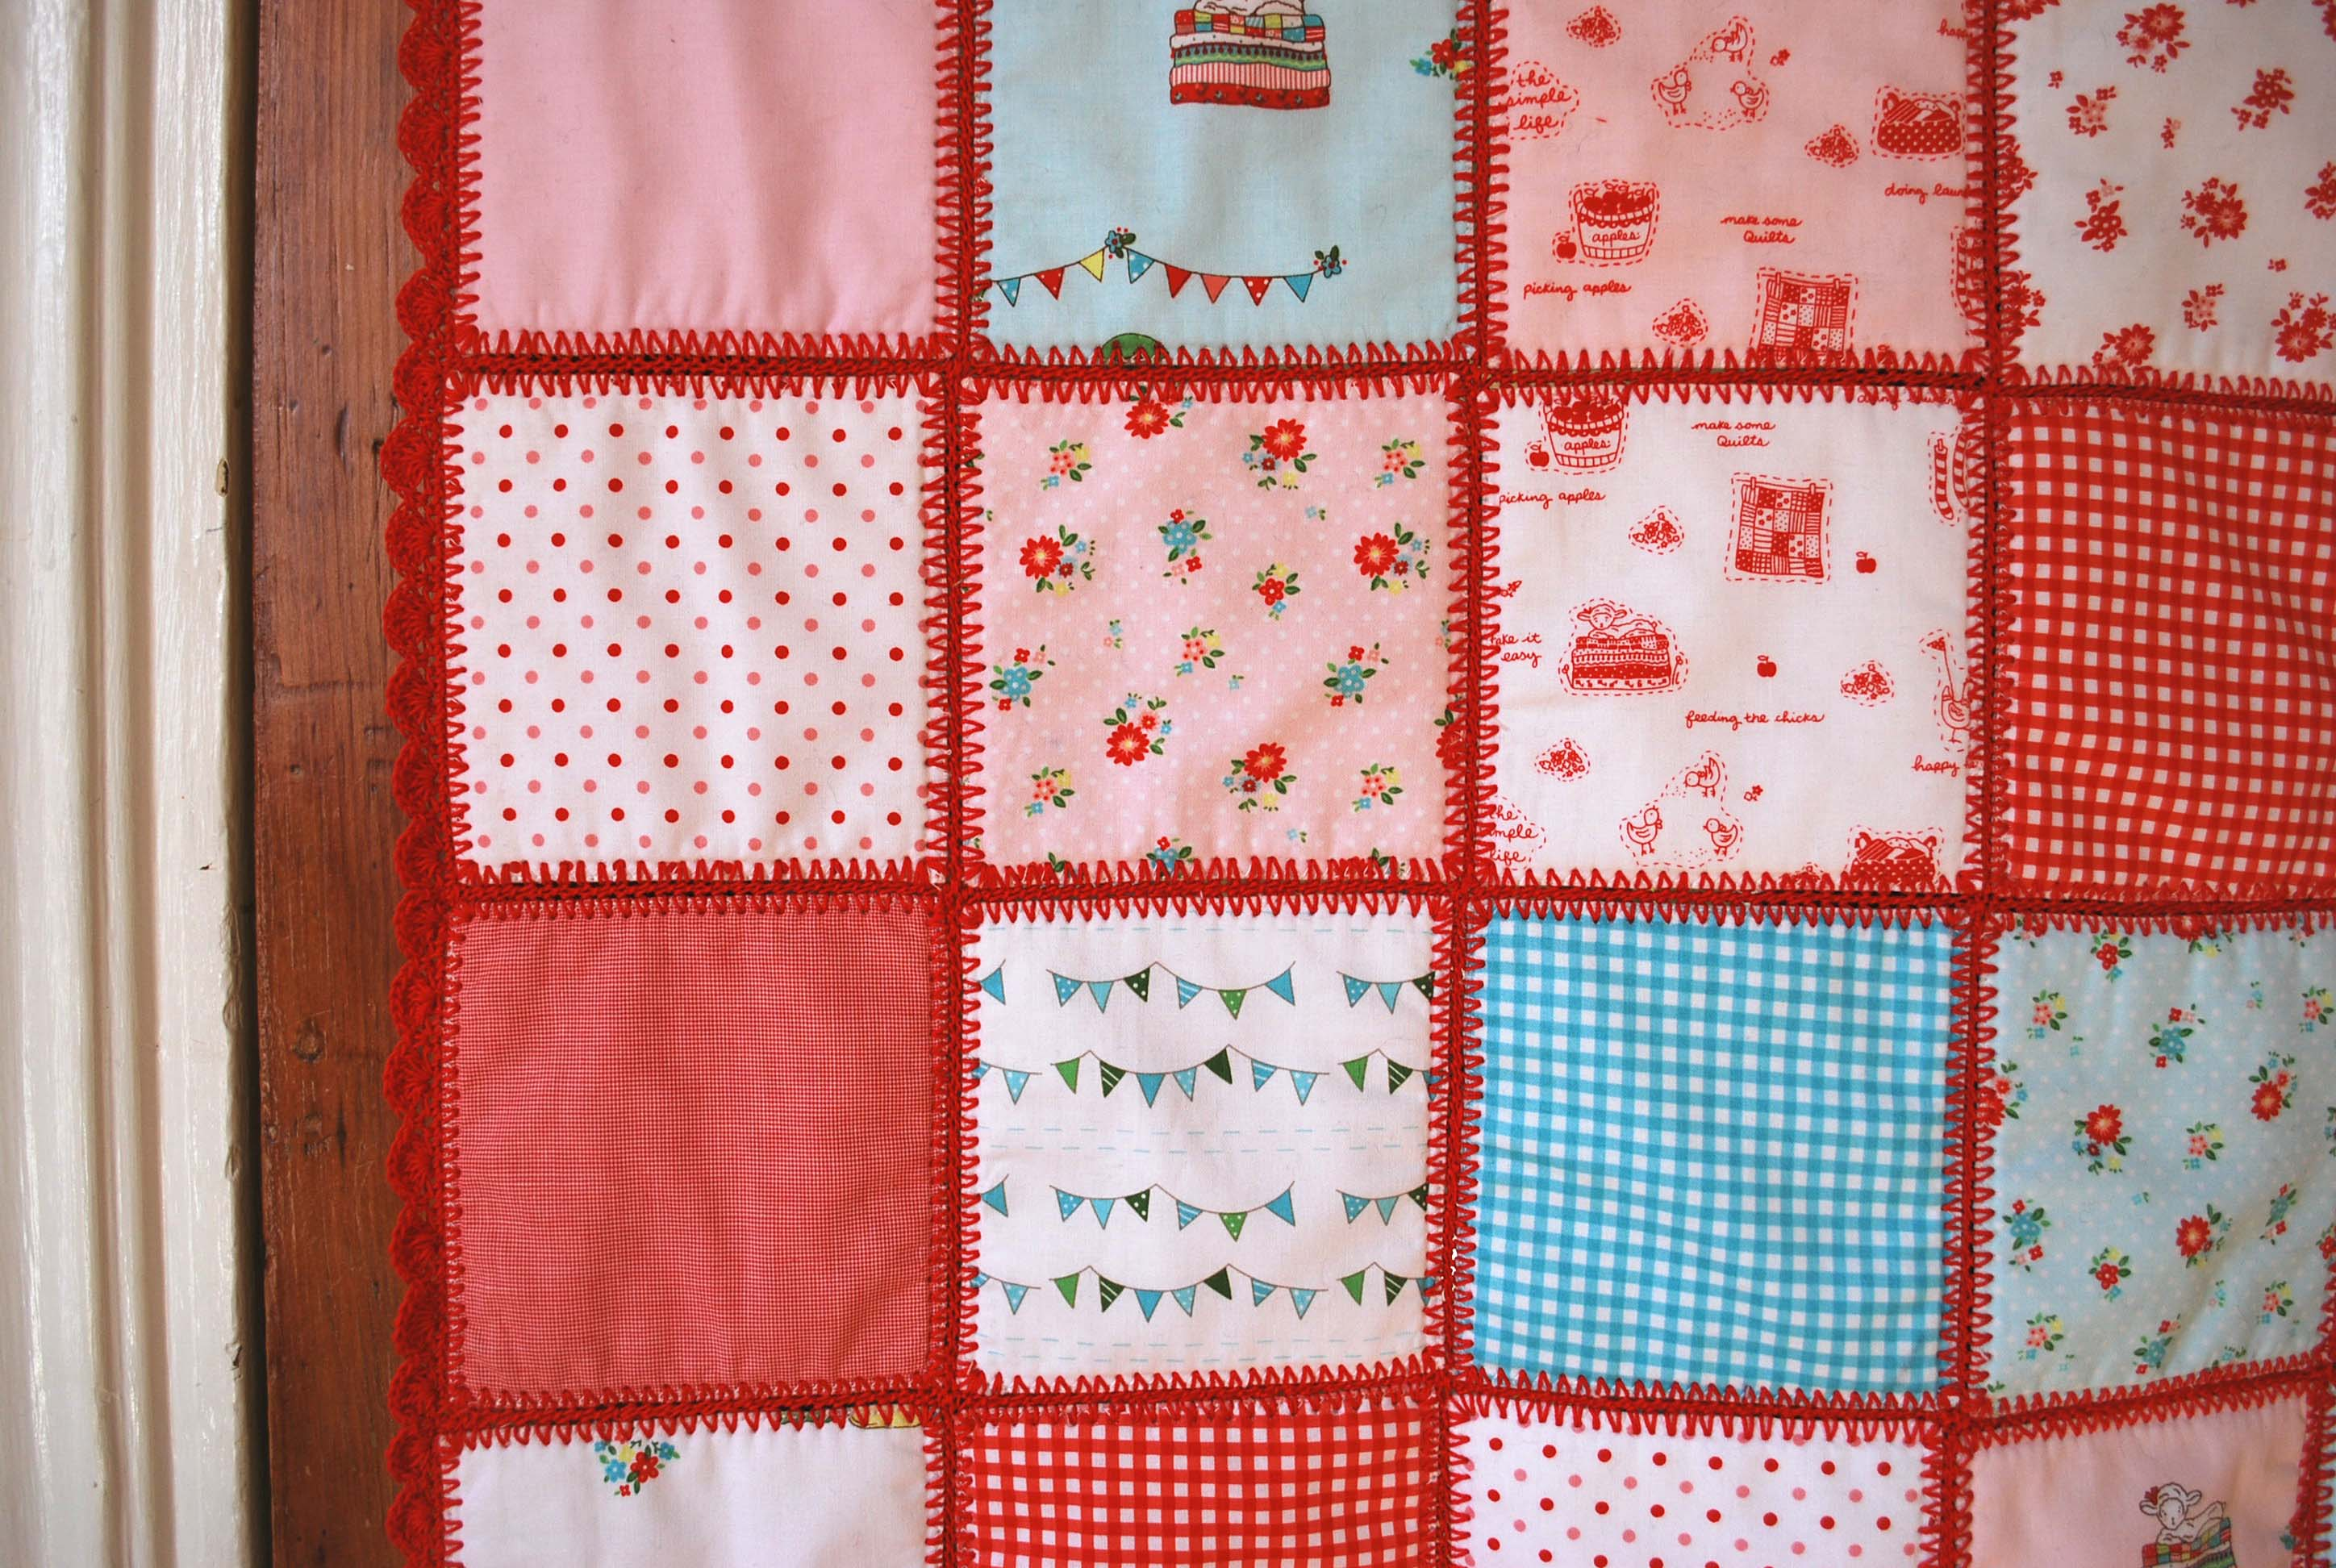 ... putting together more of our Crochet Baby Patchwork Quilt Kits